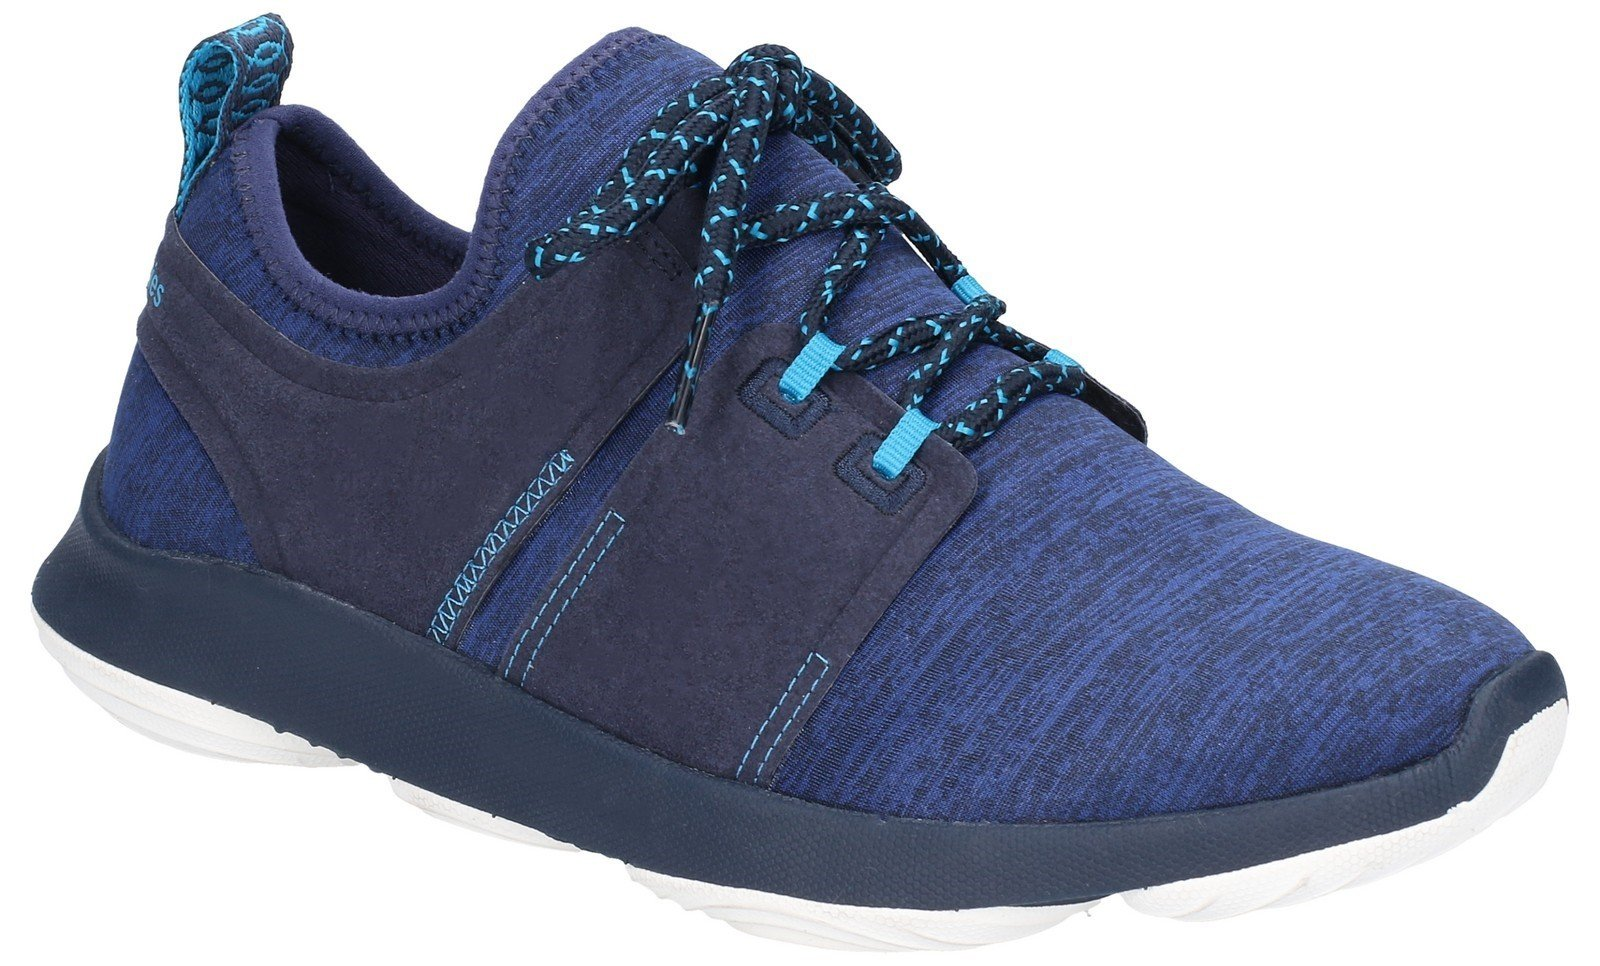 Hush Puppies Women's Geo BounceMax Lace Up Trainer Various Colours 28182 - Navy 3